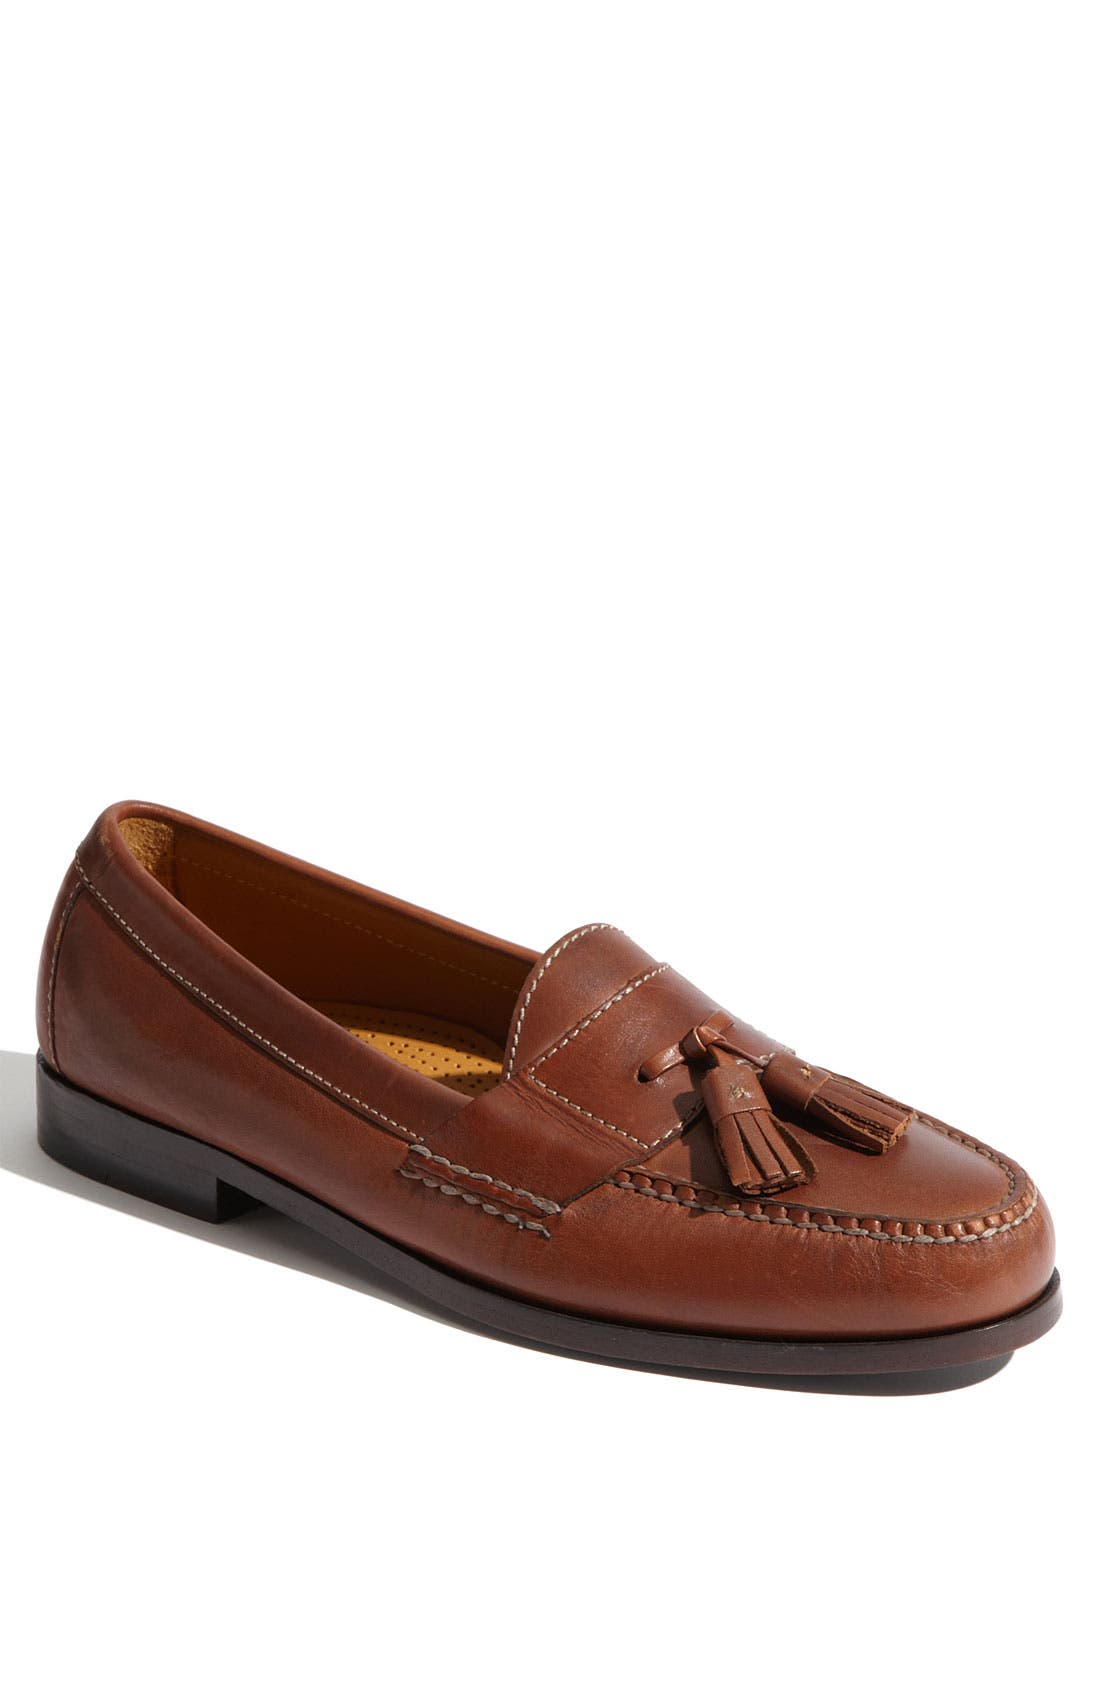 Alternate Image 1 Selected - Cole Haan 'Pinch Tassel' Loafer (Online Only)   (Men)